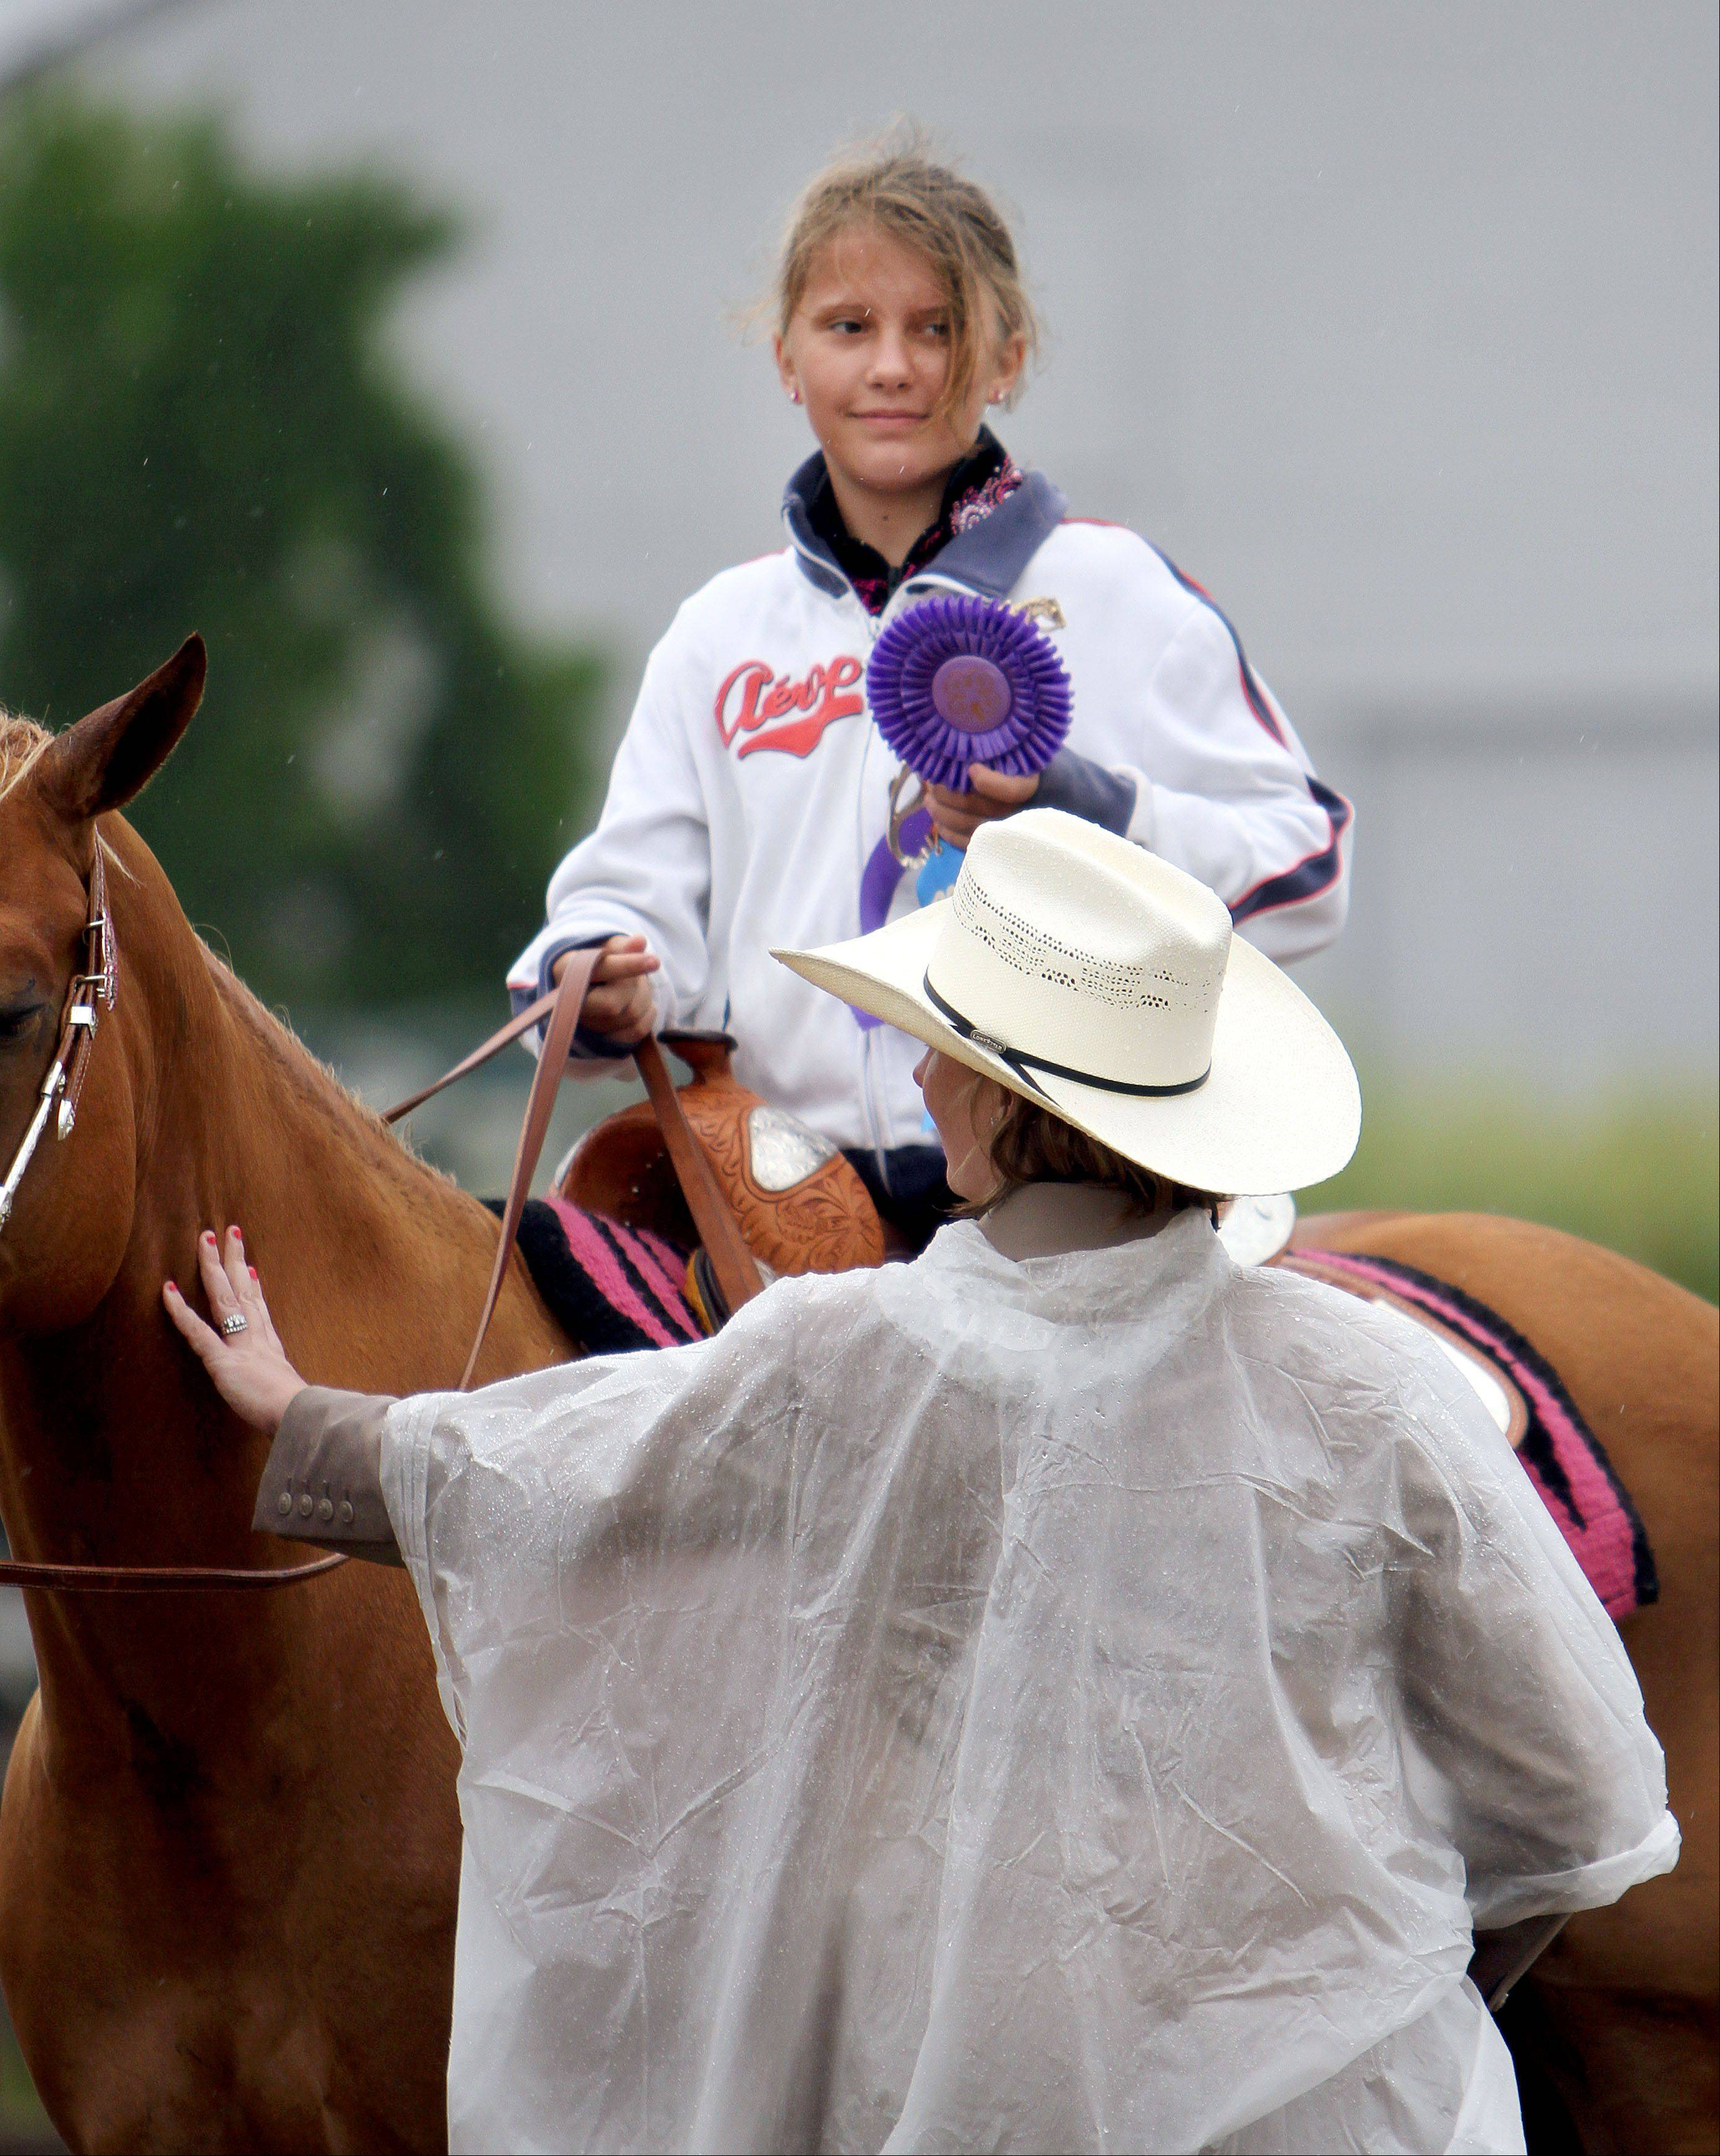 Judge Kim Stanton gives 11-year-old Sandra Zaluski of Spring Grove the grand champion ribbon during beginners western command class judging.